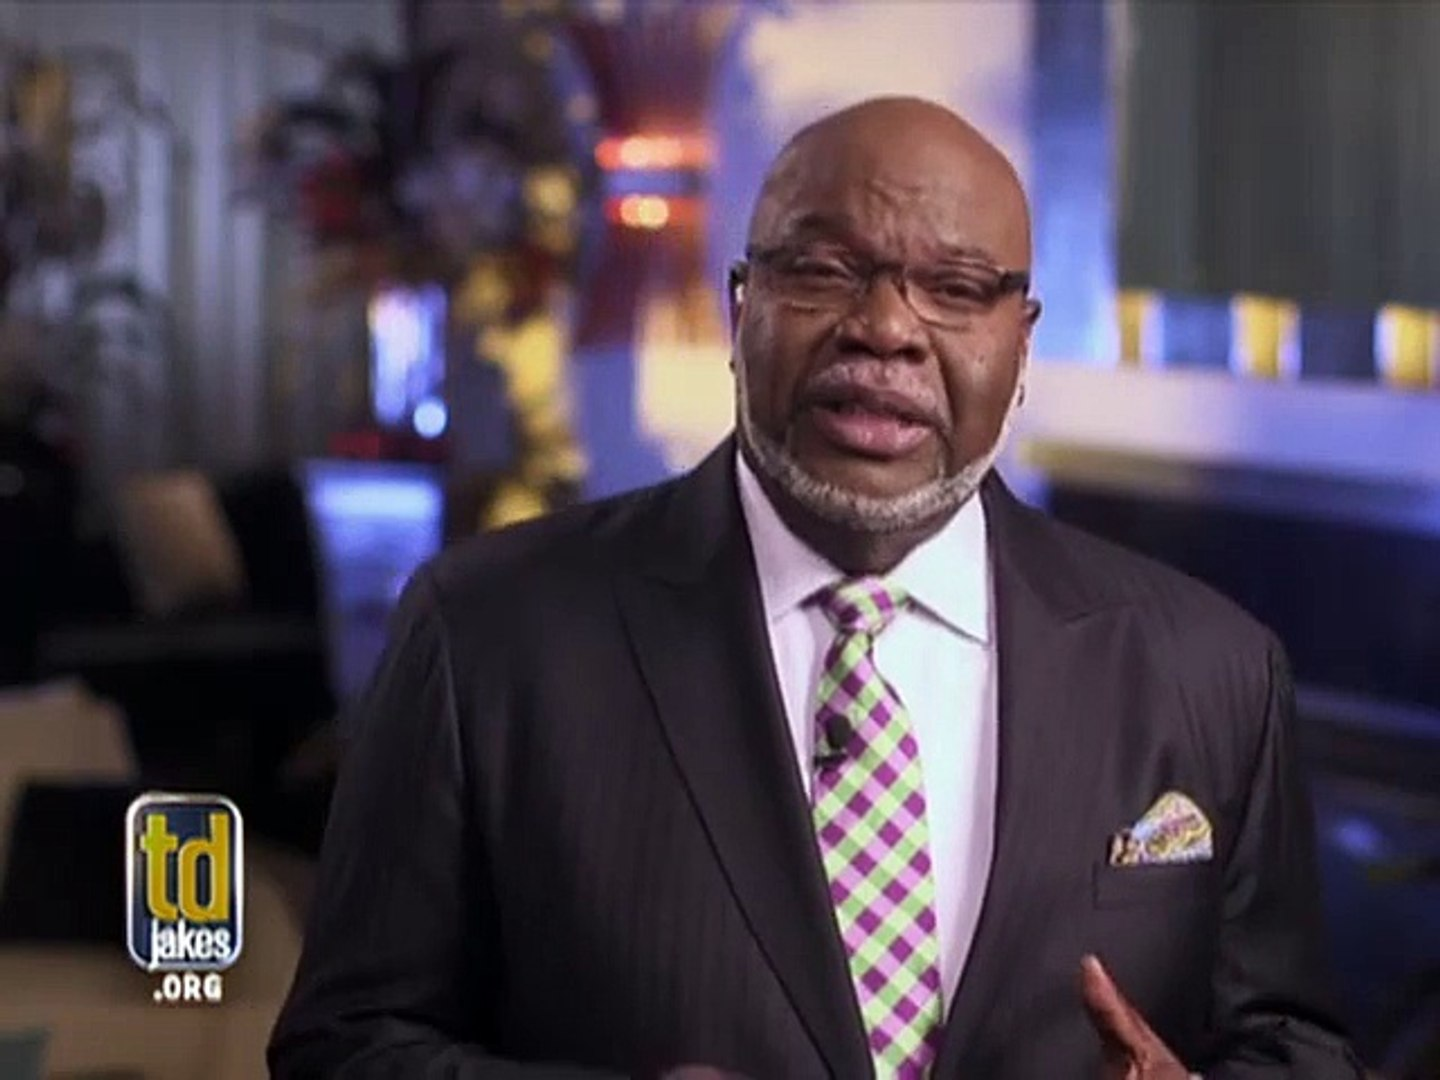 Bishop TD Jakes Sermons 2016 - The Core of Transformation -The Potter's Touch